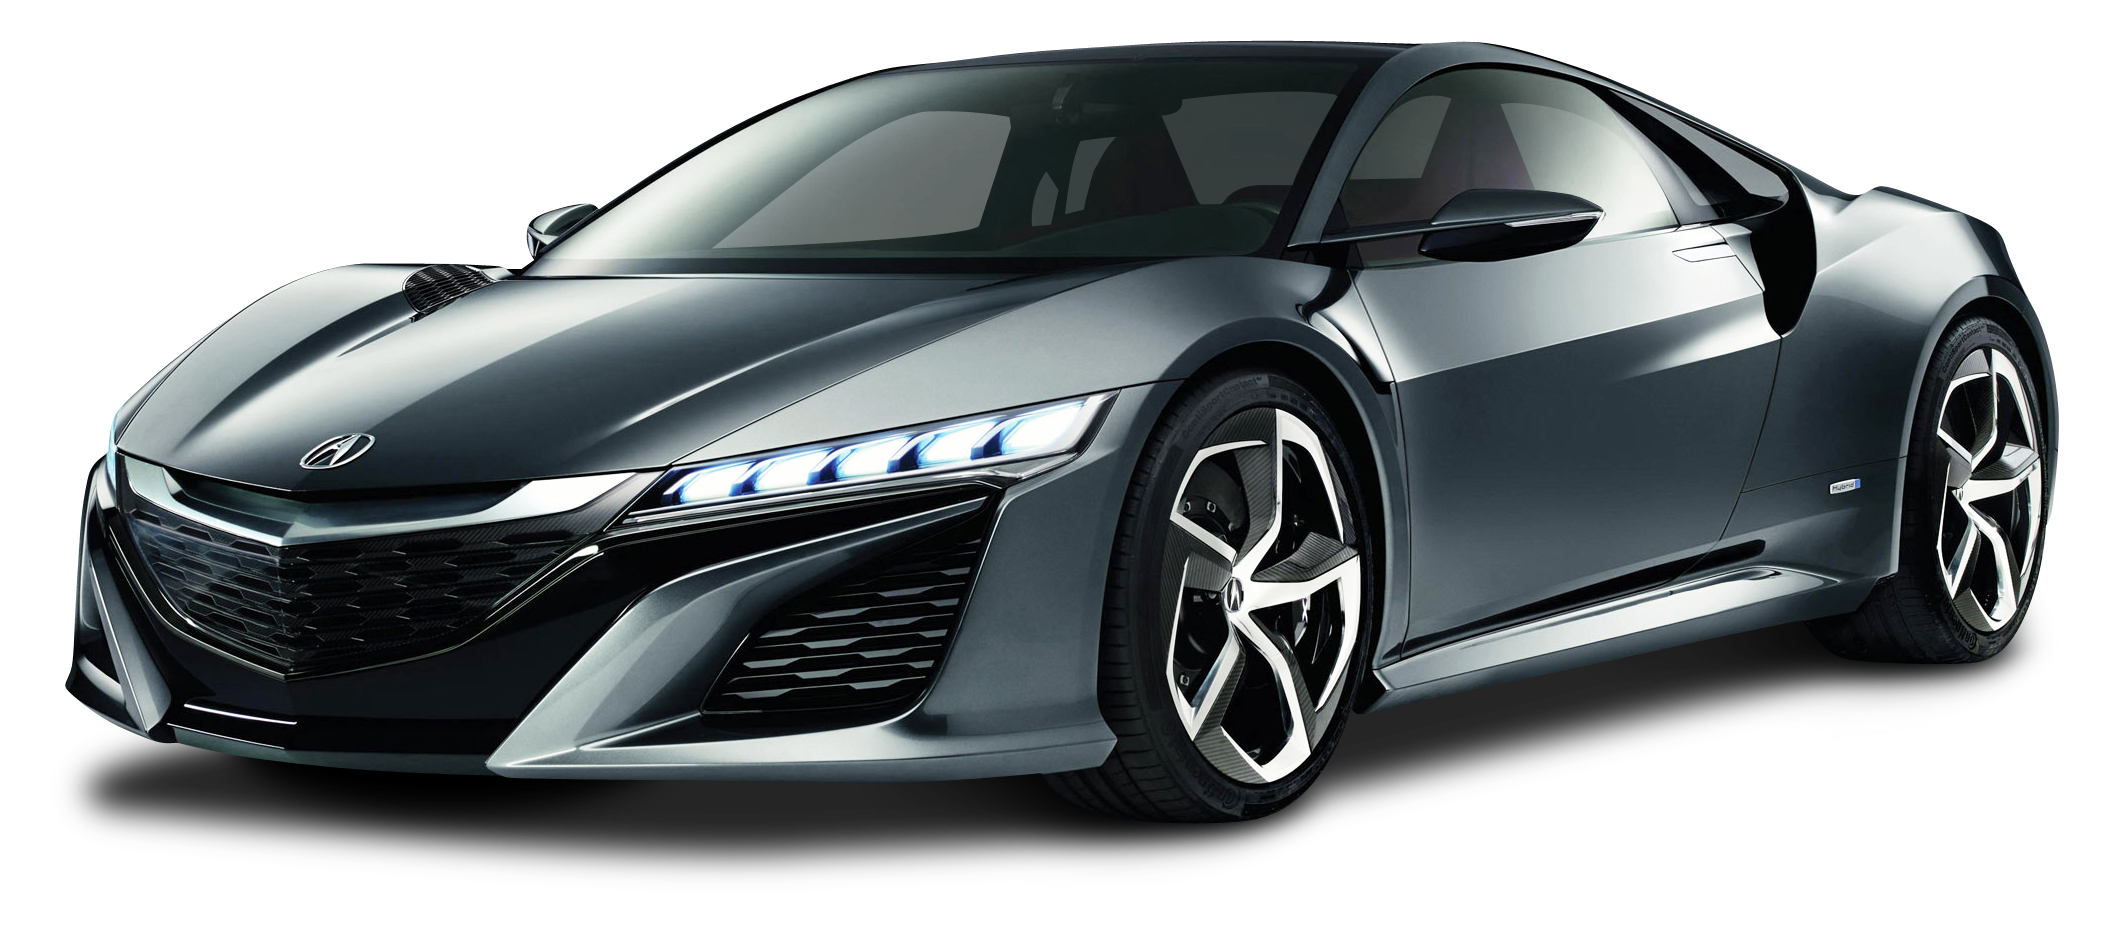 Acura NSX Car PNG Image.